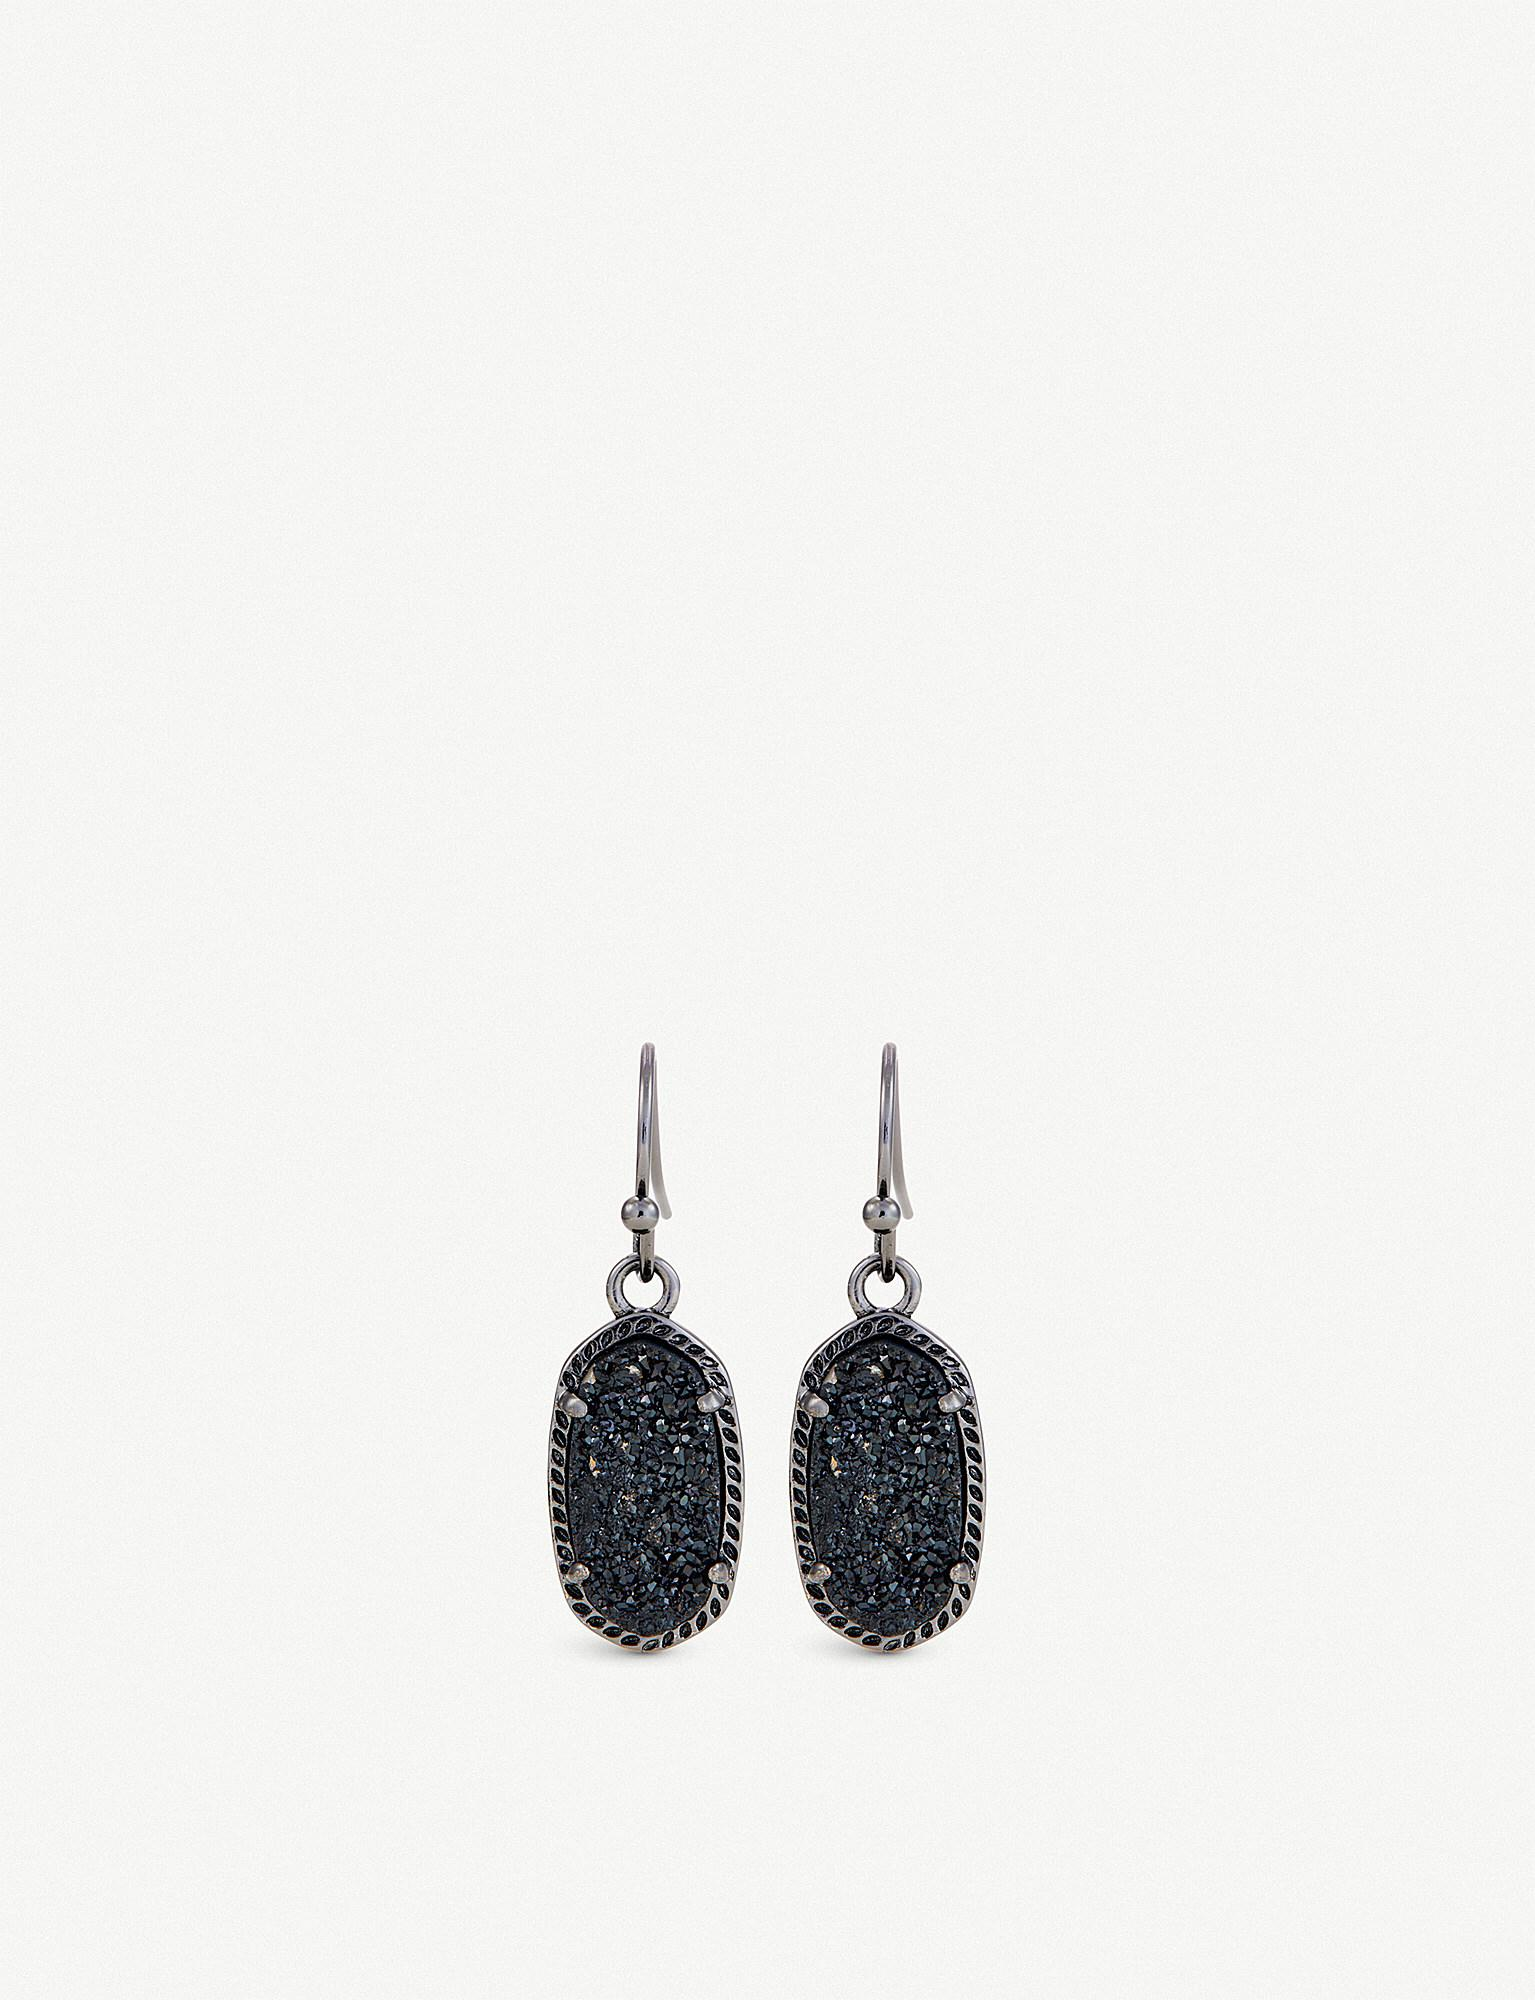 earrings gunmetal products jewelry caviar noir glitzy